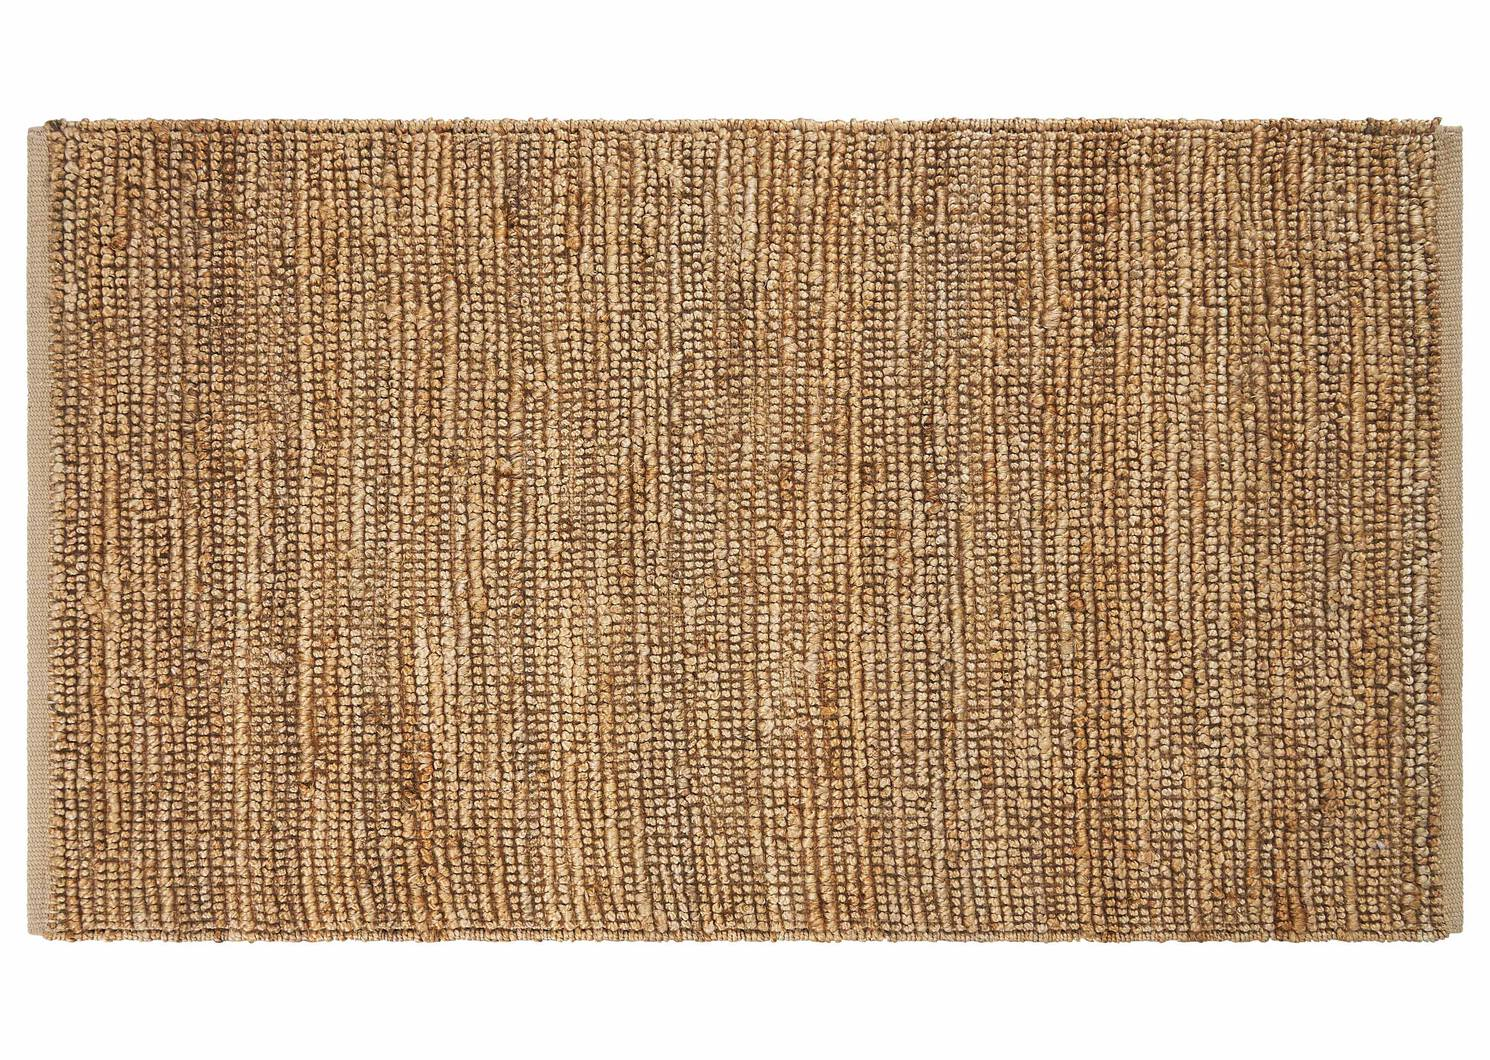 Tapis décoratif Doherty 36x60 naturel